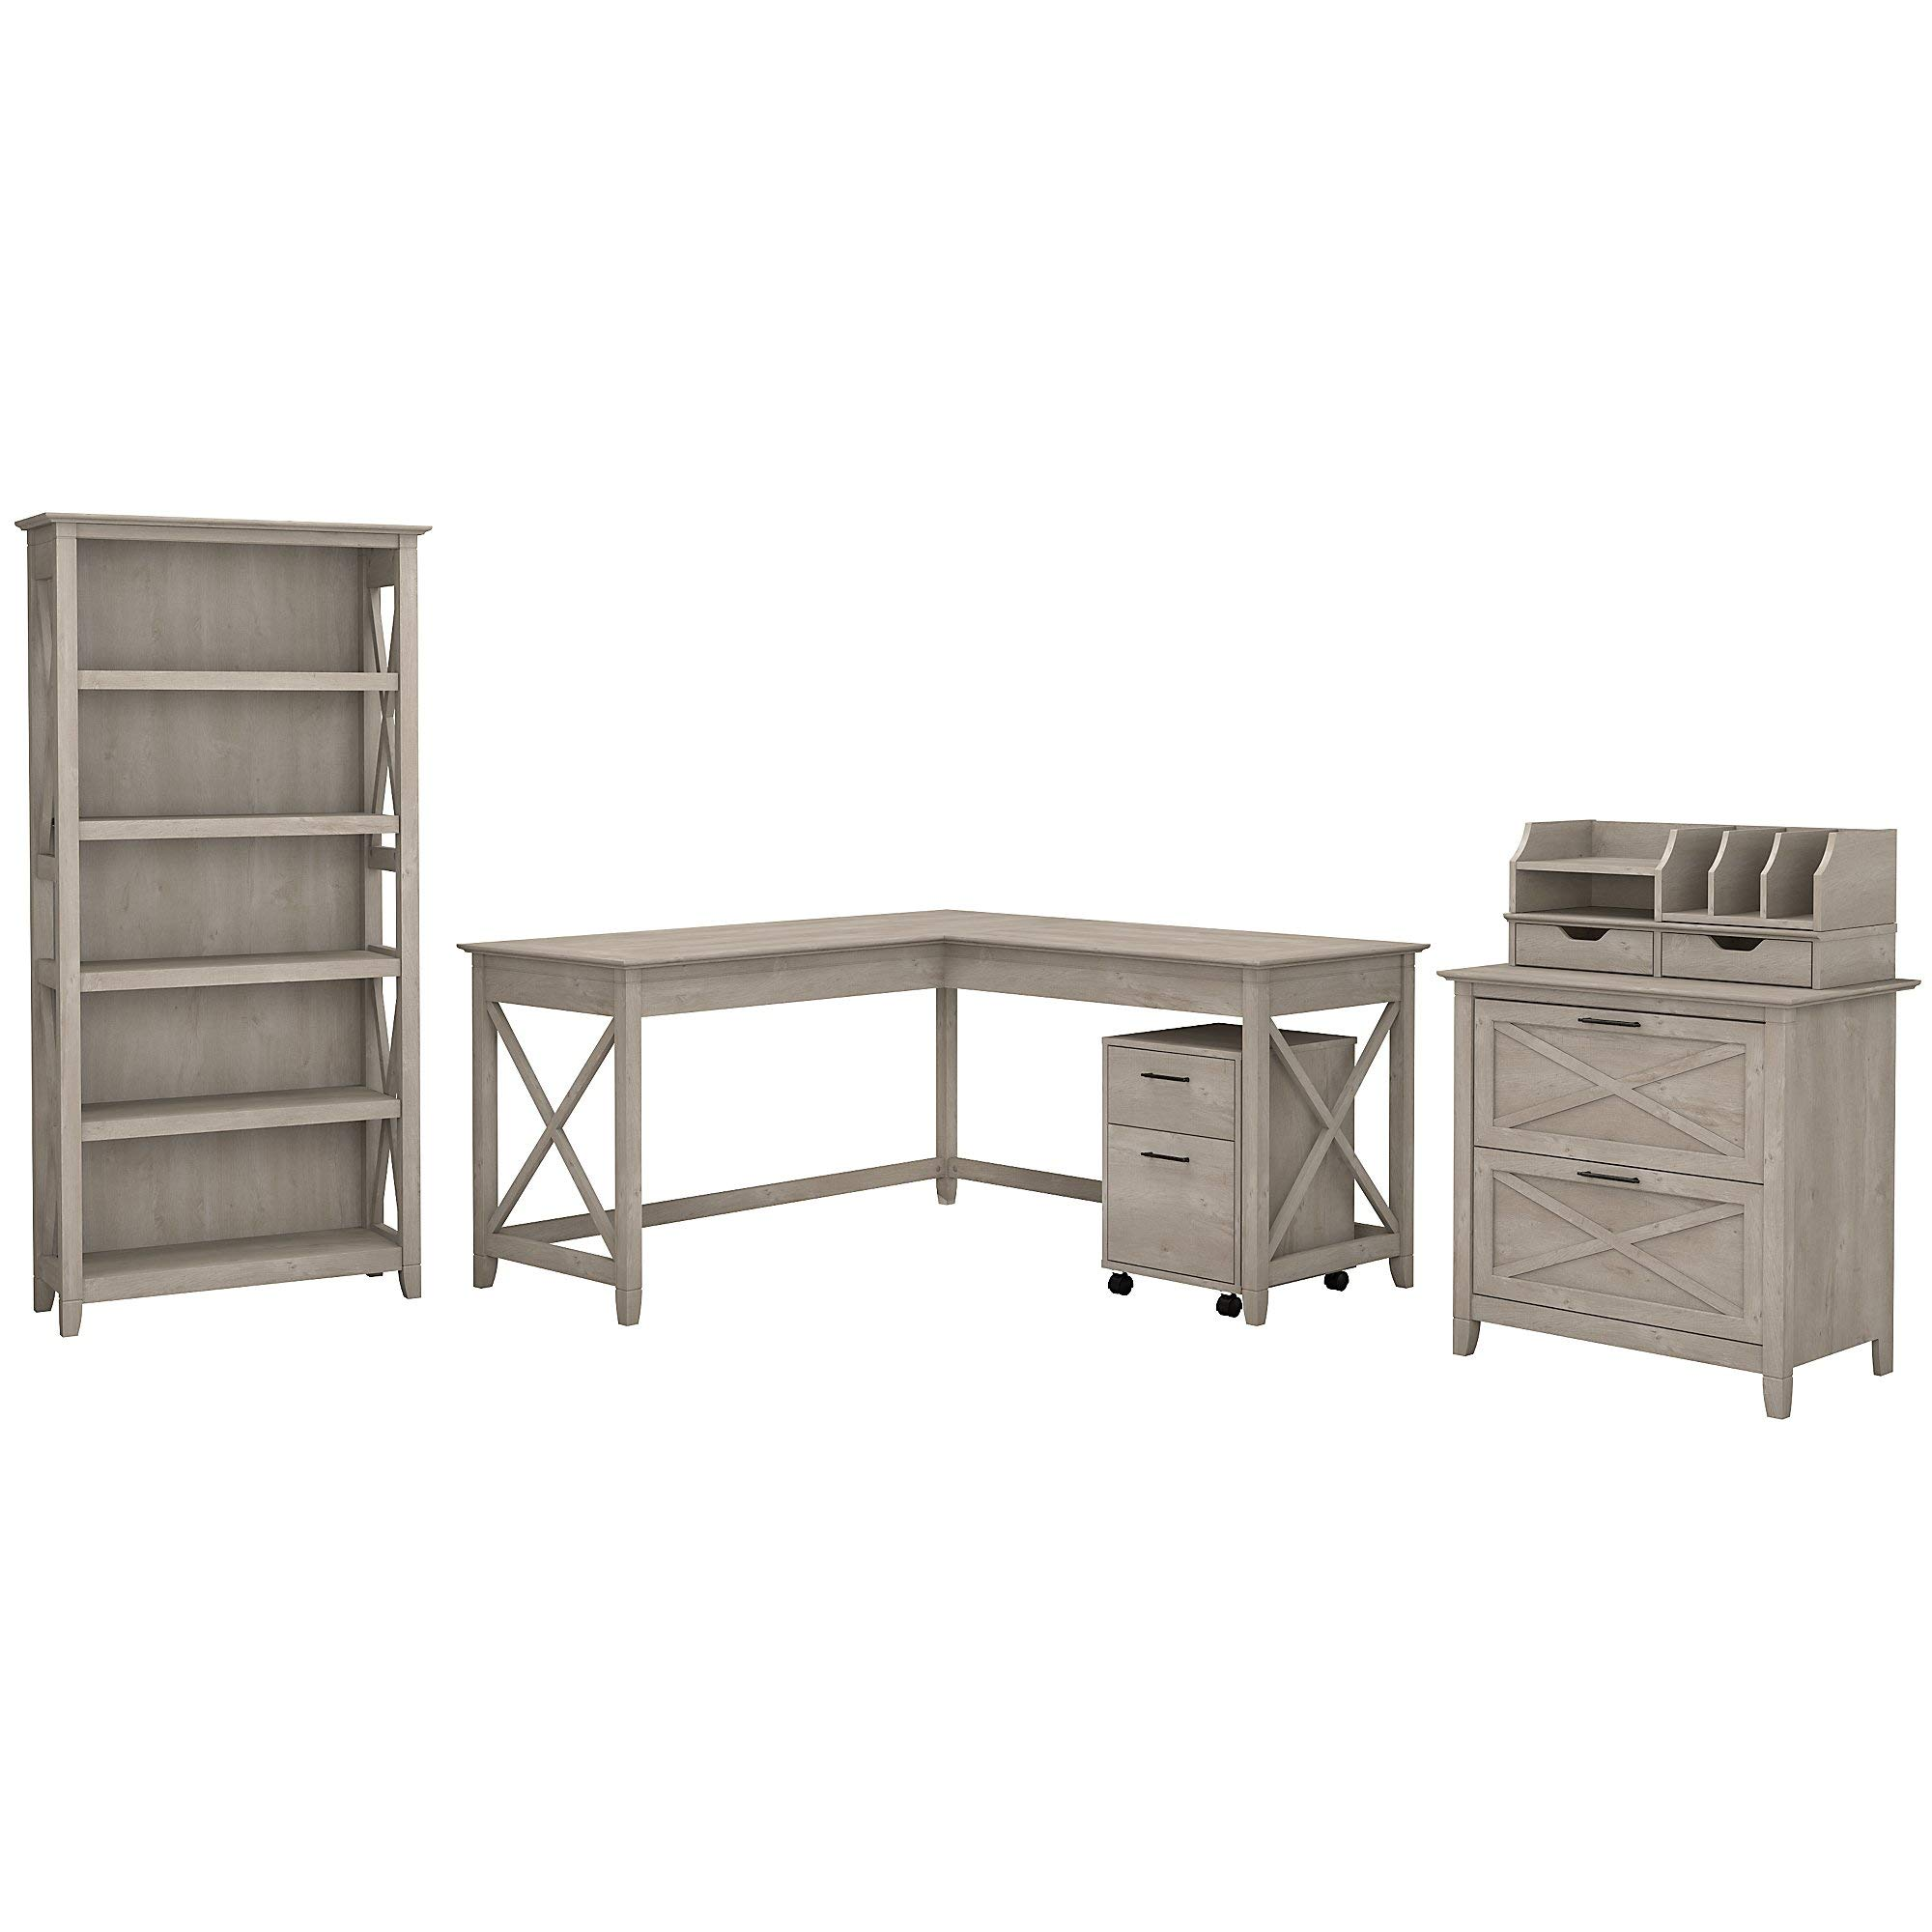 Bush Furniture Key West 60W L Shaped Desk with File Cabinets, Bookcase and Desktop Organizers in Washed Gray by Bush Furniture